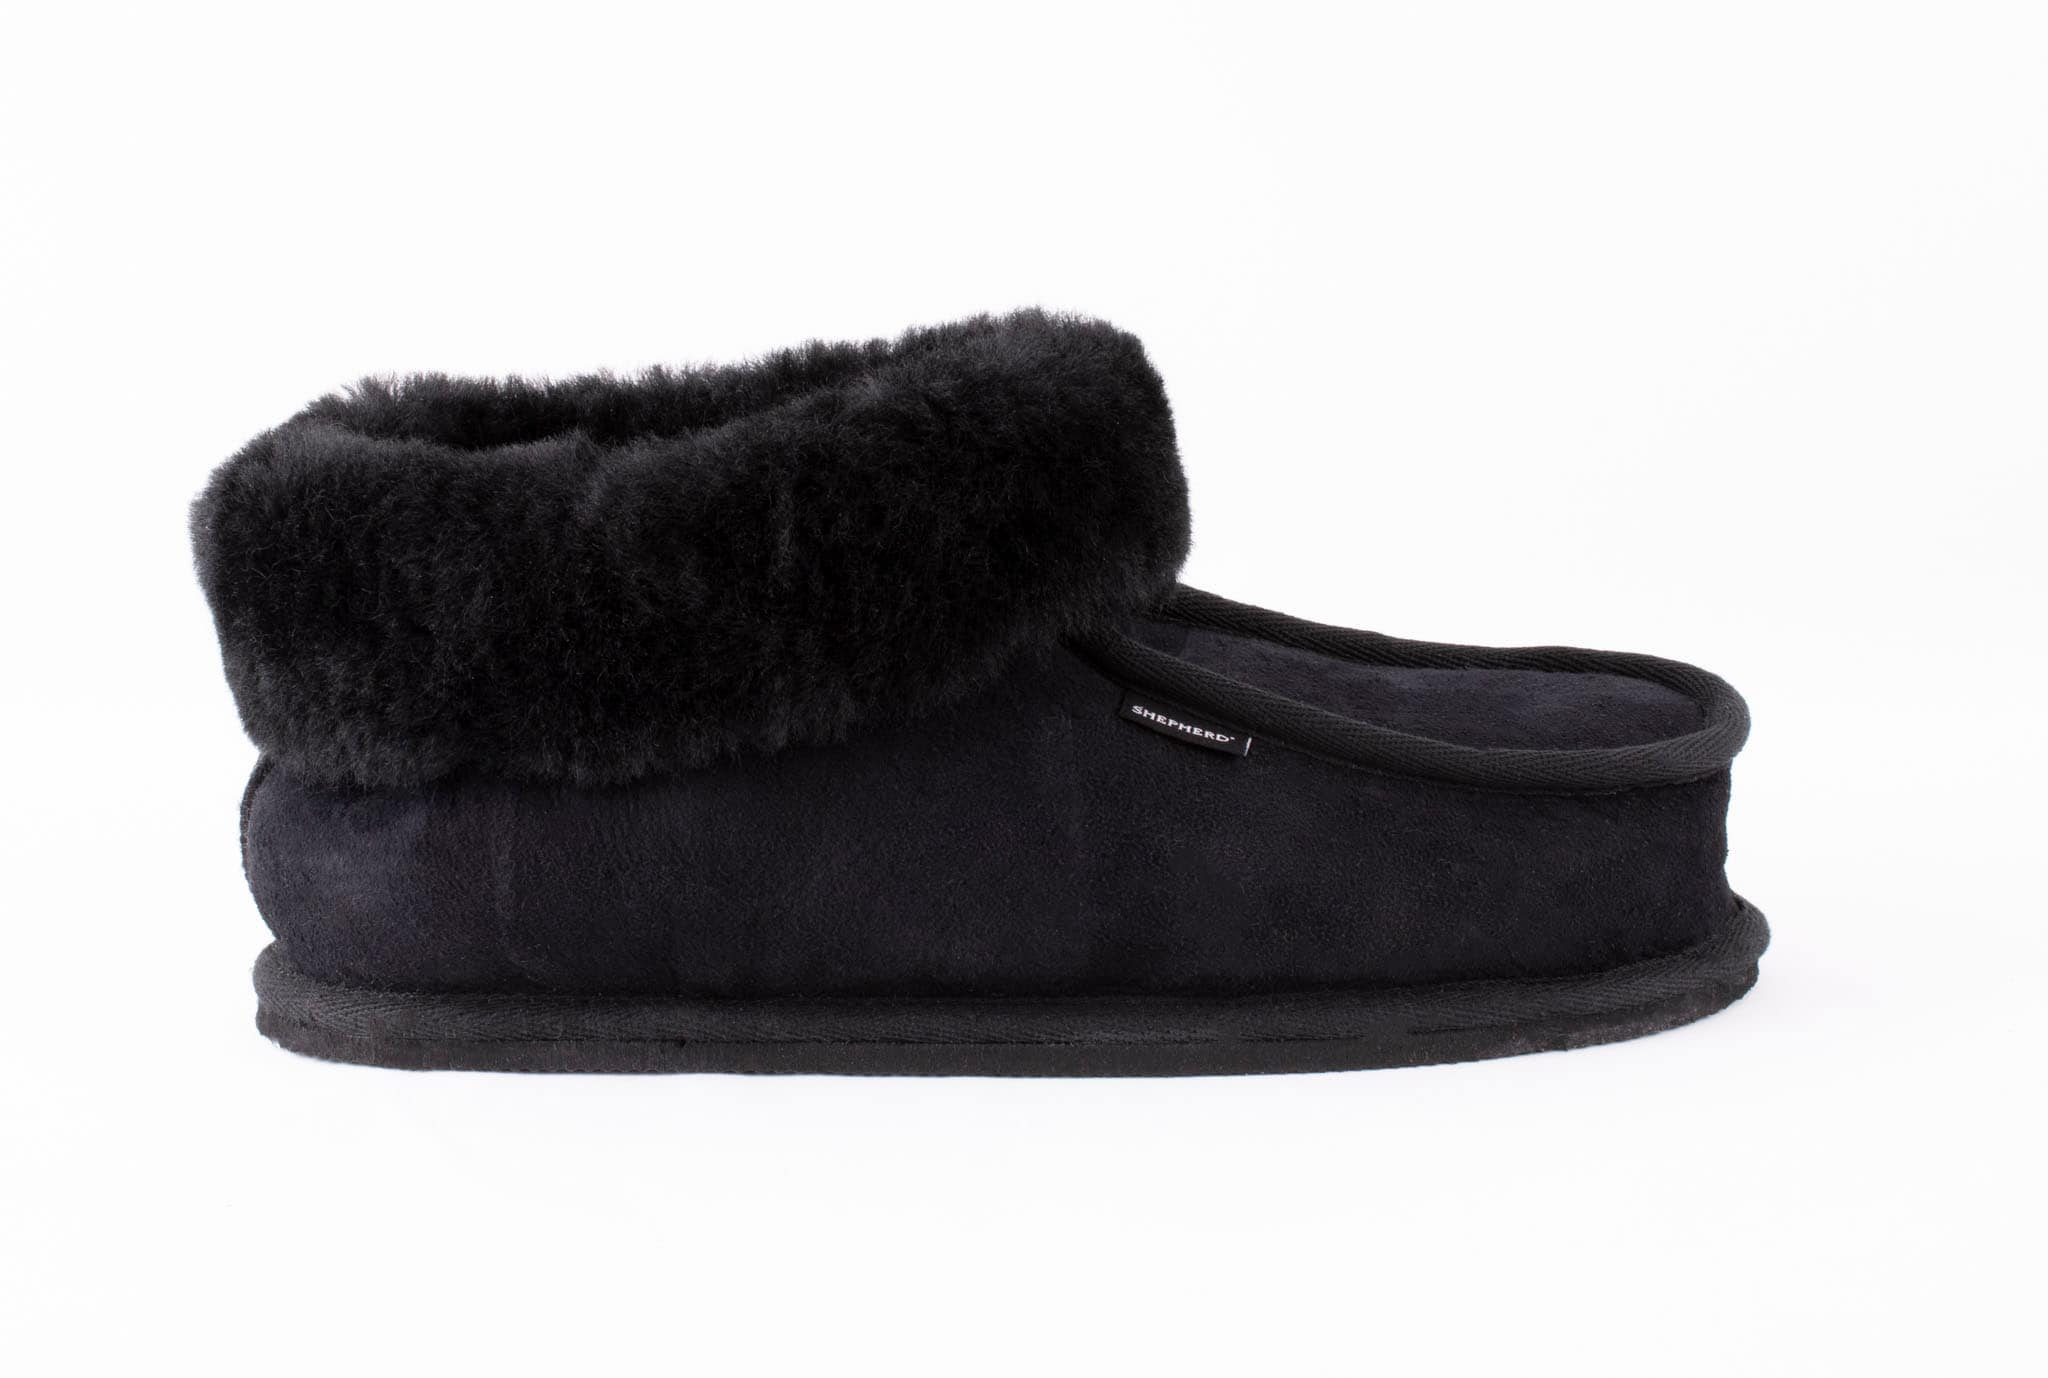 Krister sheepskin slippers Black